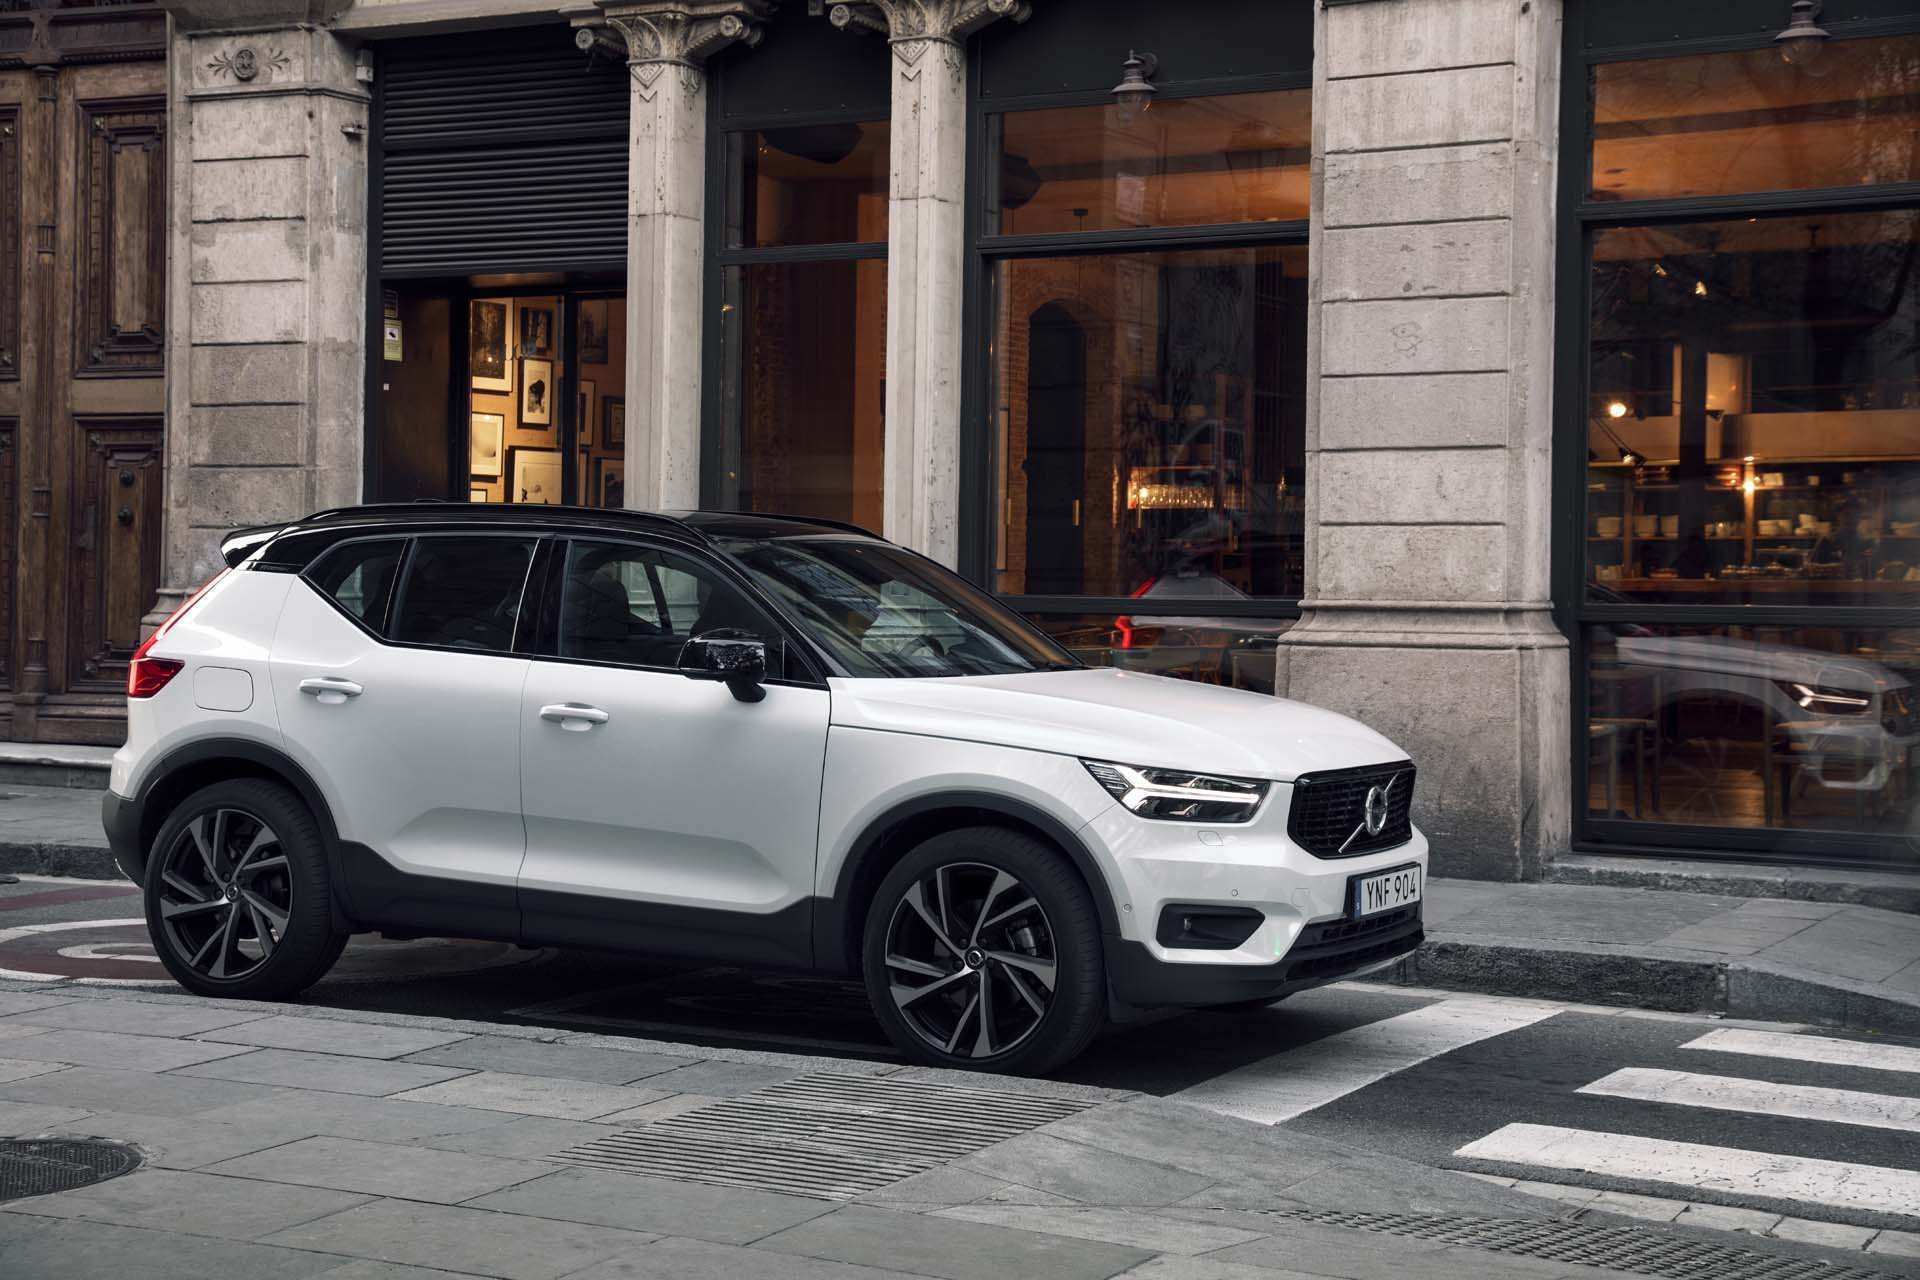 28 Concept of 2019 Volvo Suv Pictures by 2019 Volvo Suv